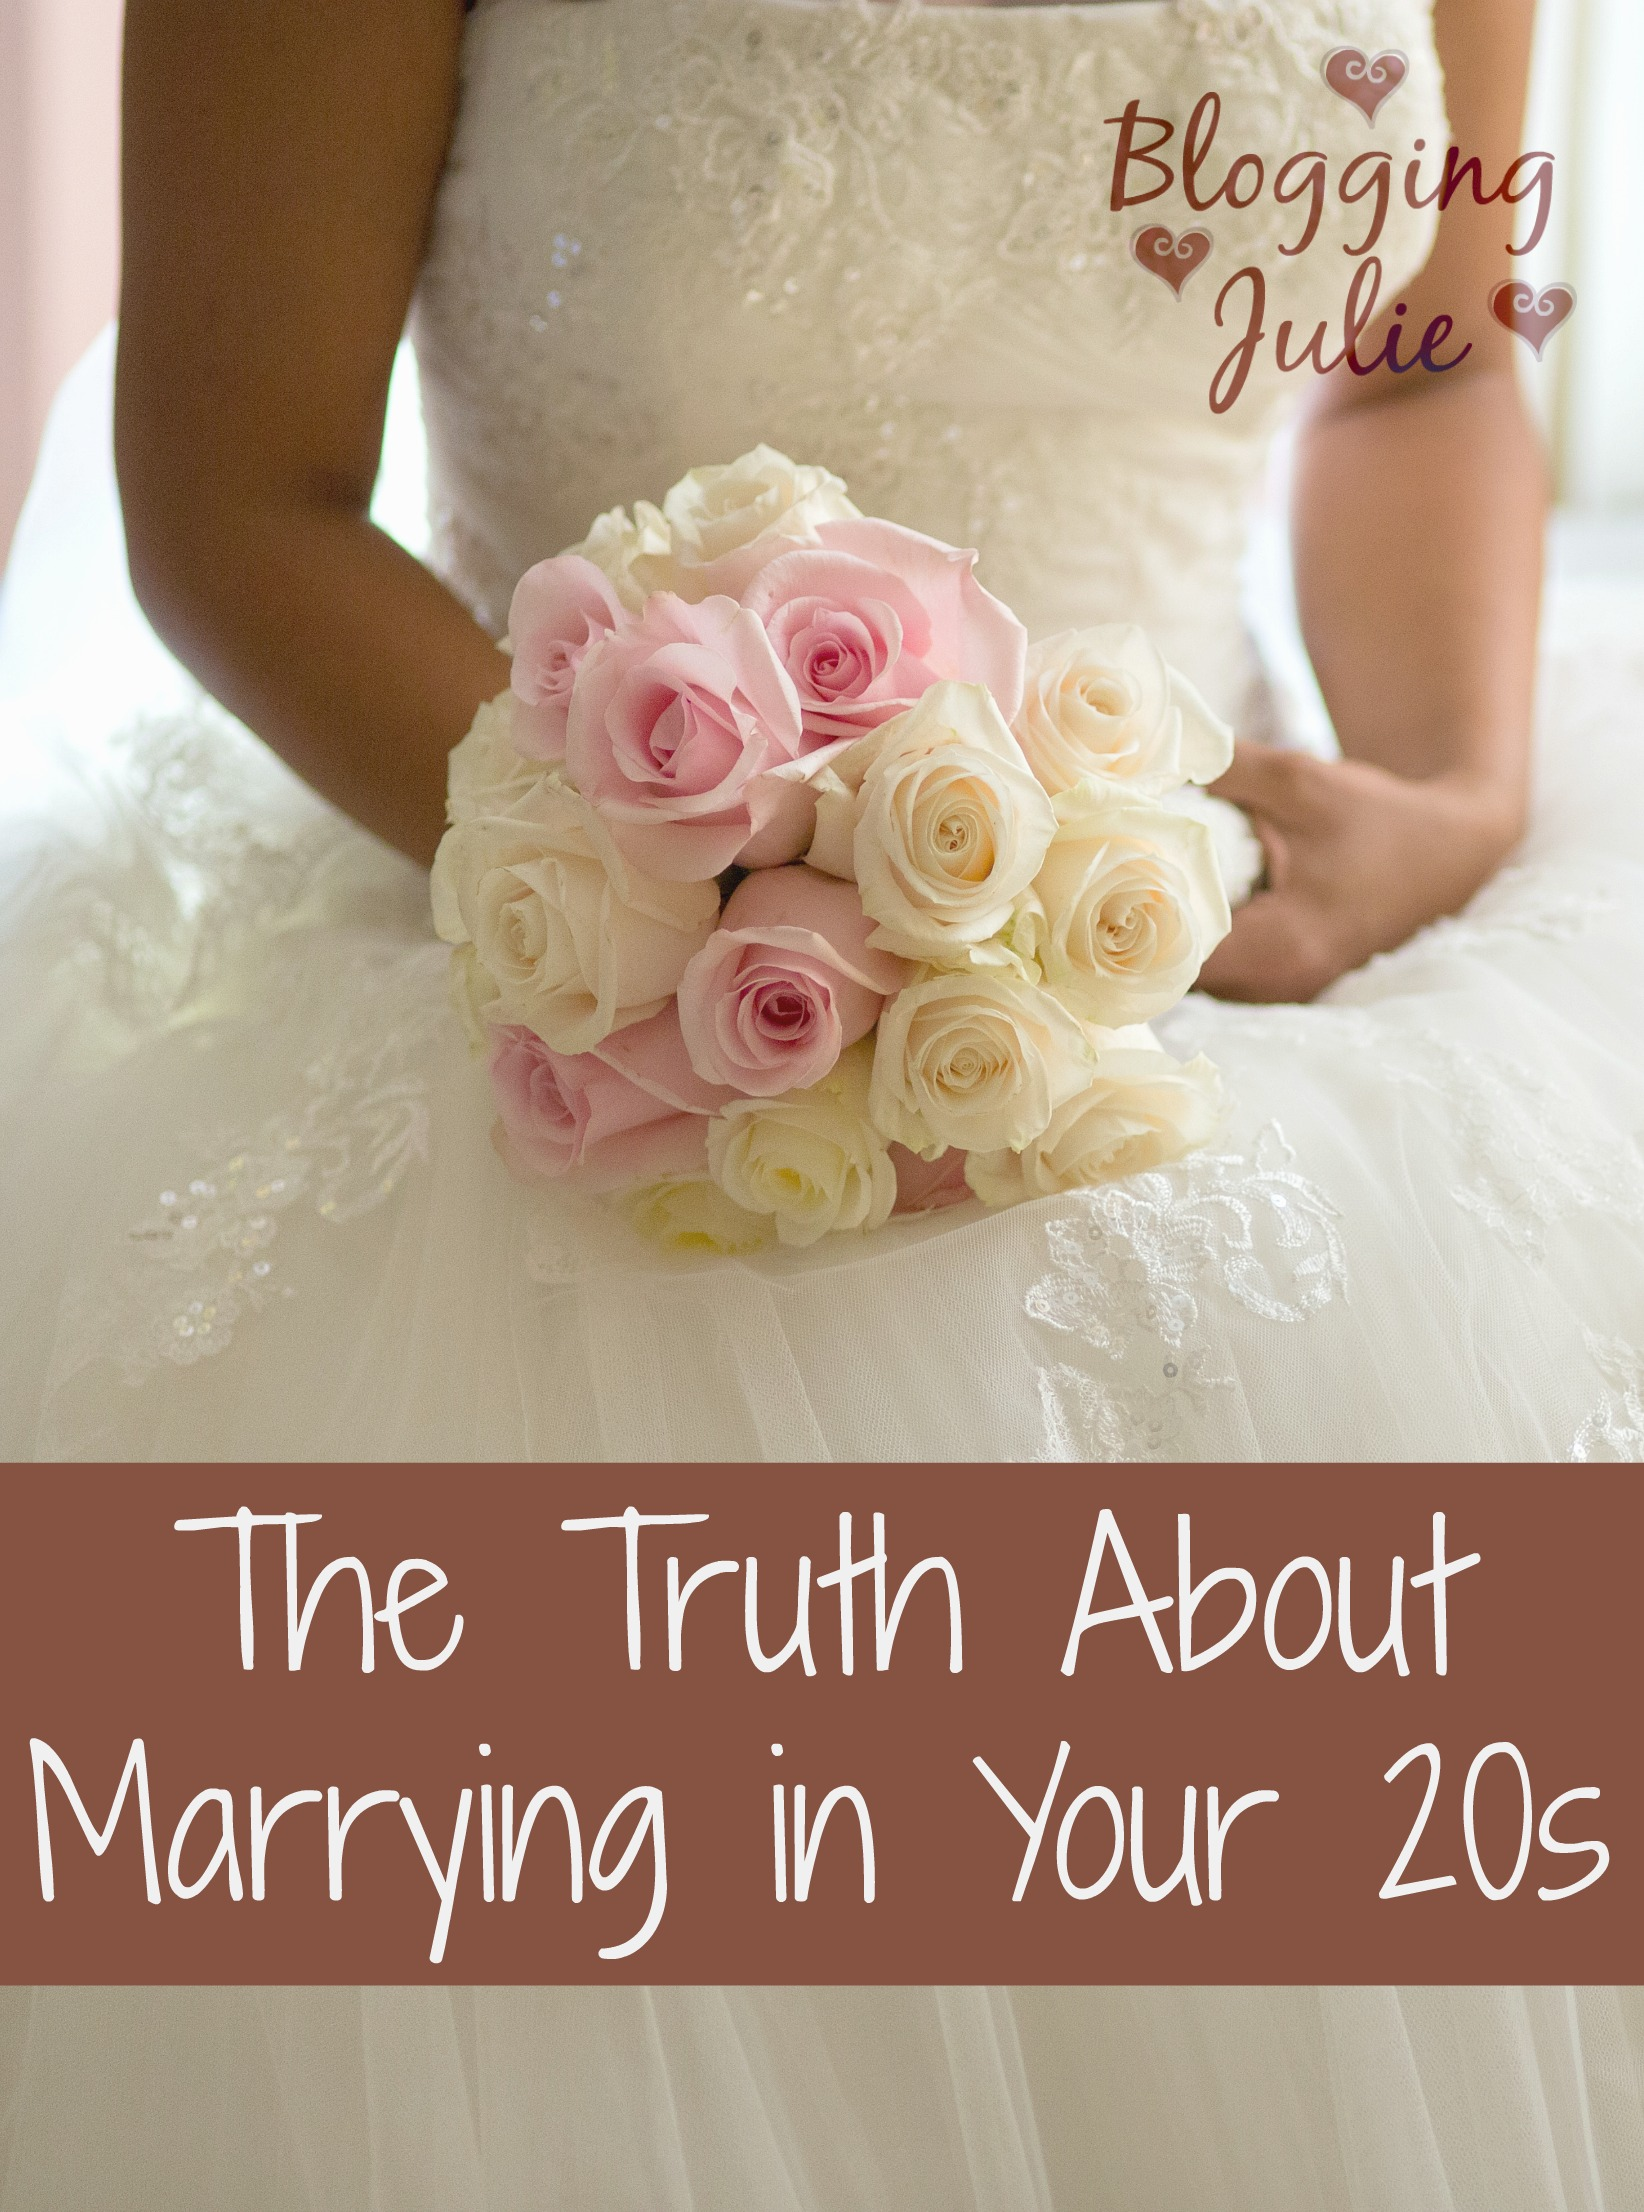 The Truth About Marrying in Your 20s